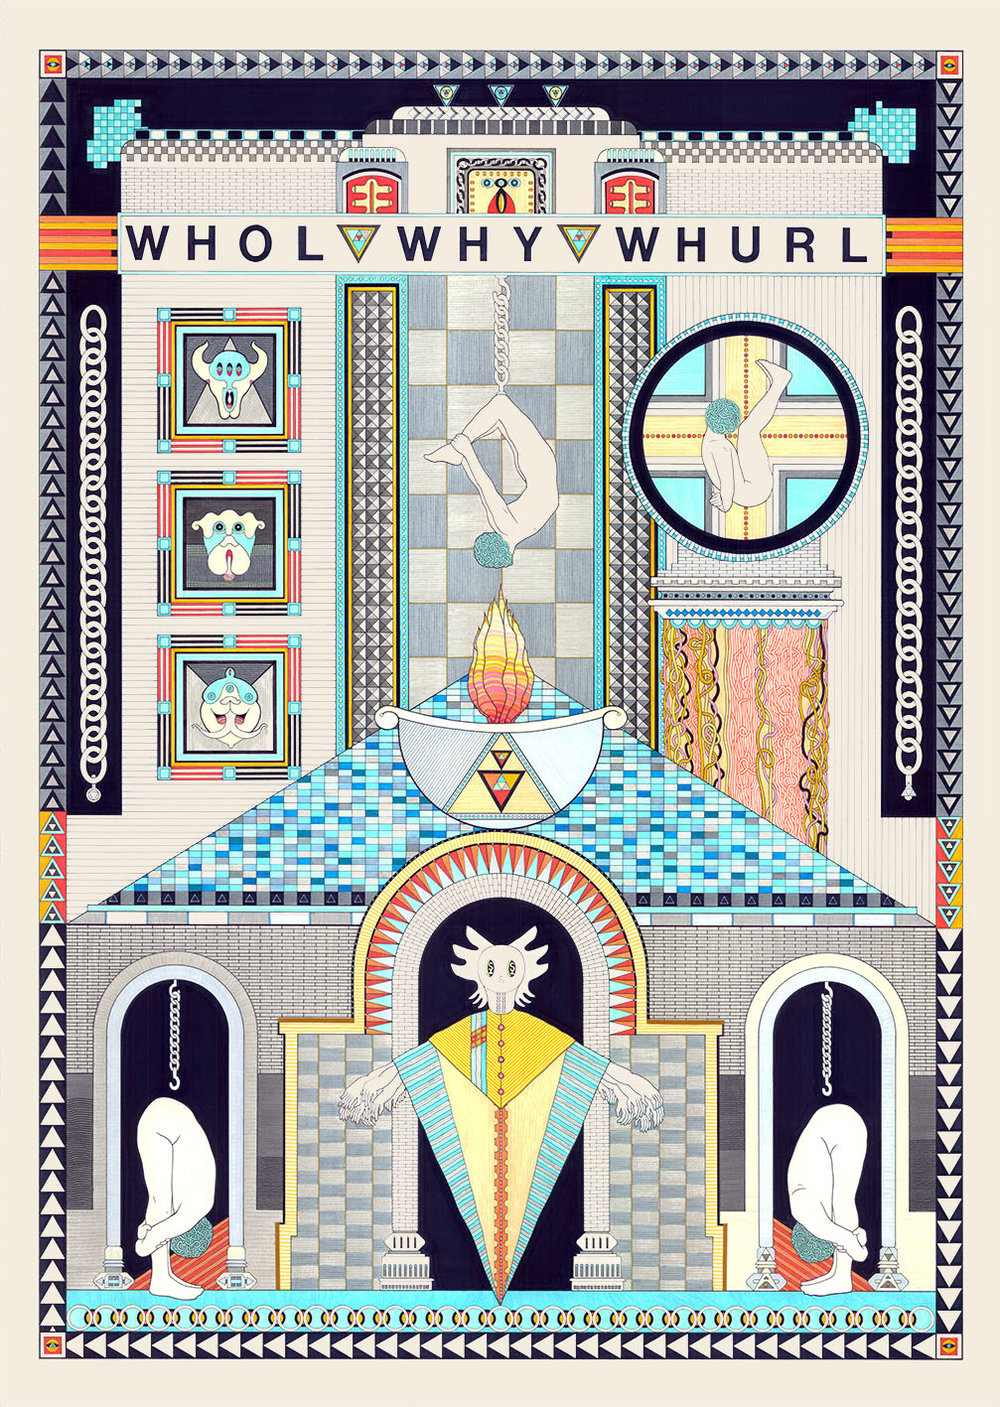 Whol Why Whurl, 2013